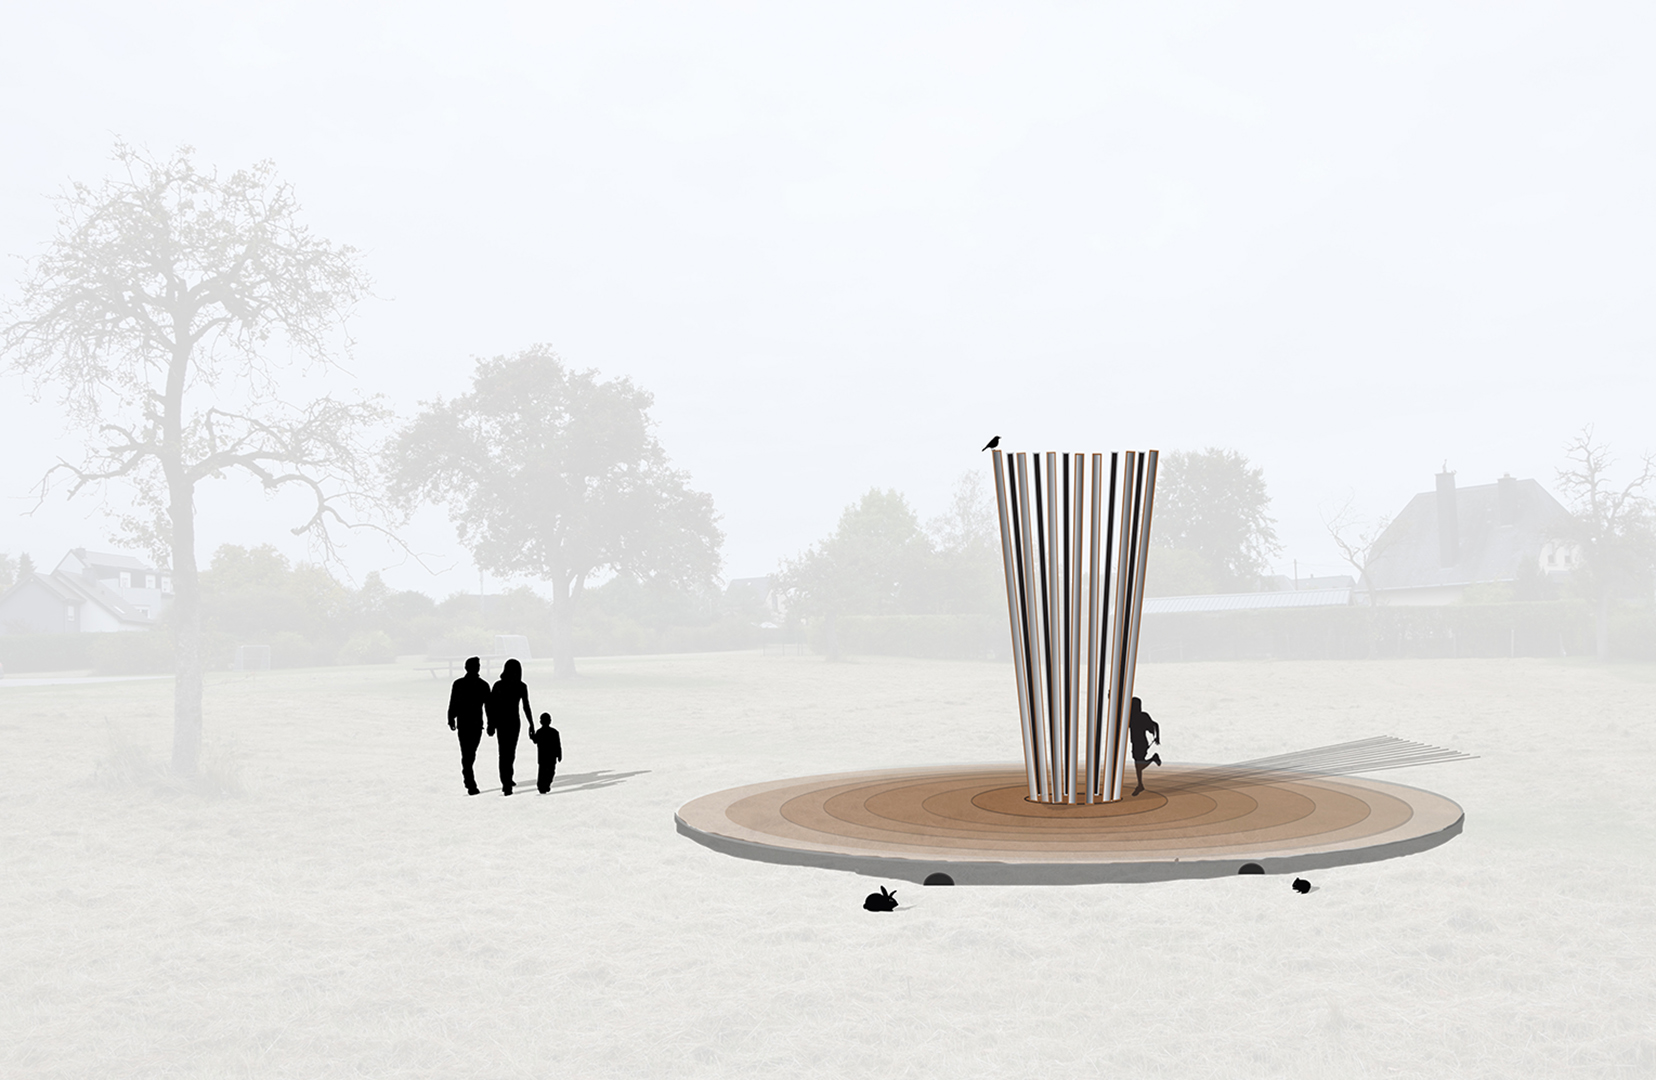 drawing, Project, sculpture, model, public sculpture, public art, architecture, contemporary art, art, Thierry Ferreira, design, installation, sitespecific, photography, video, Landart, Luxembourg